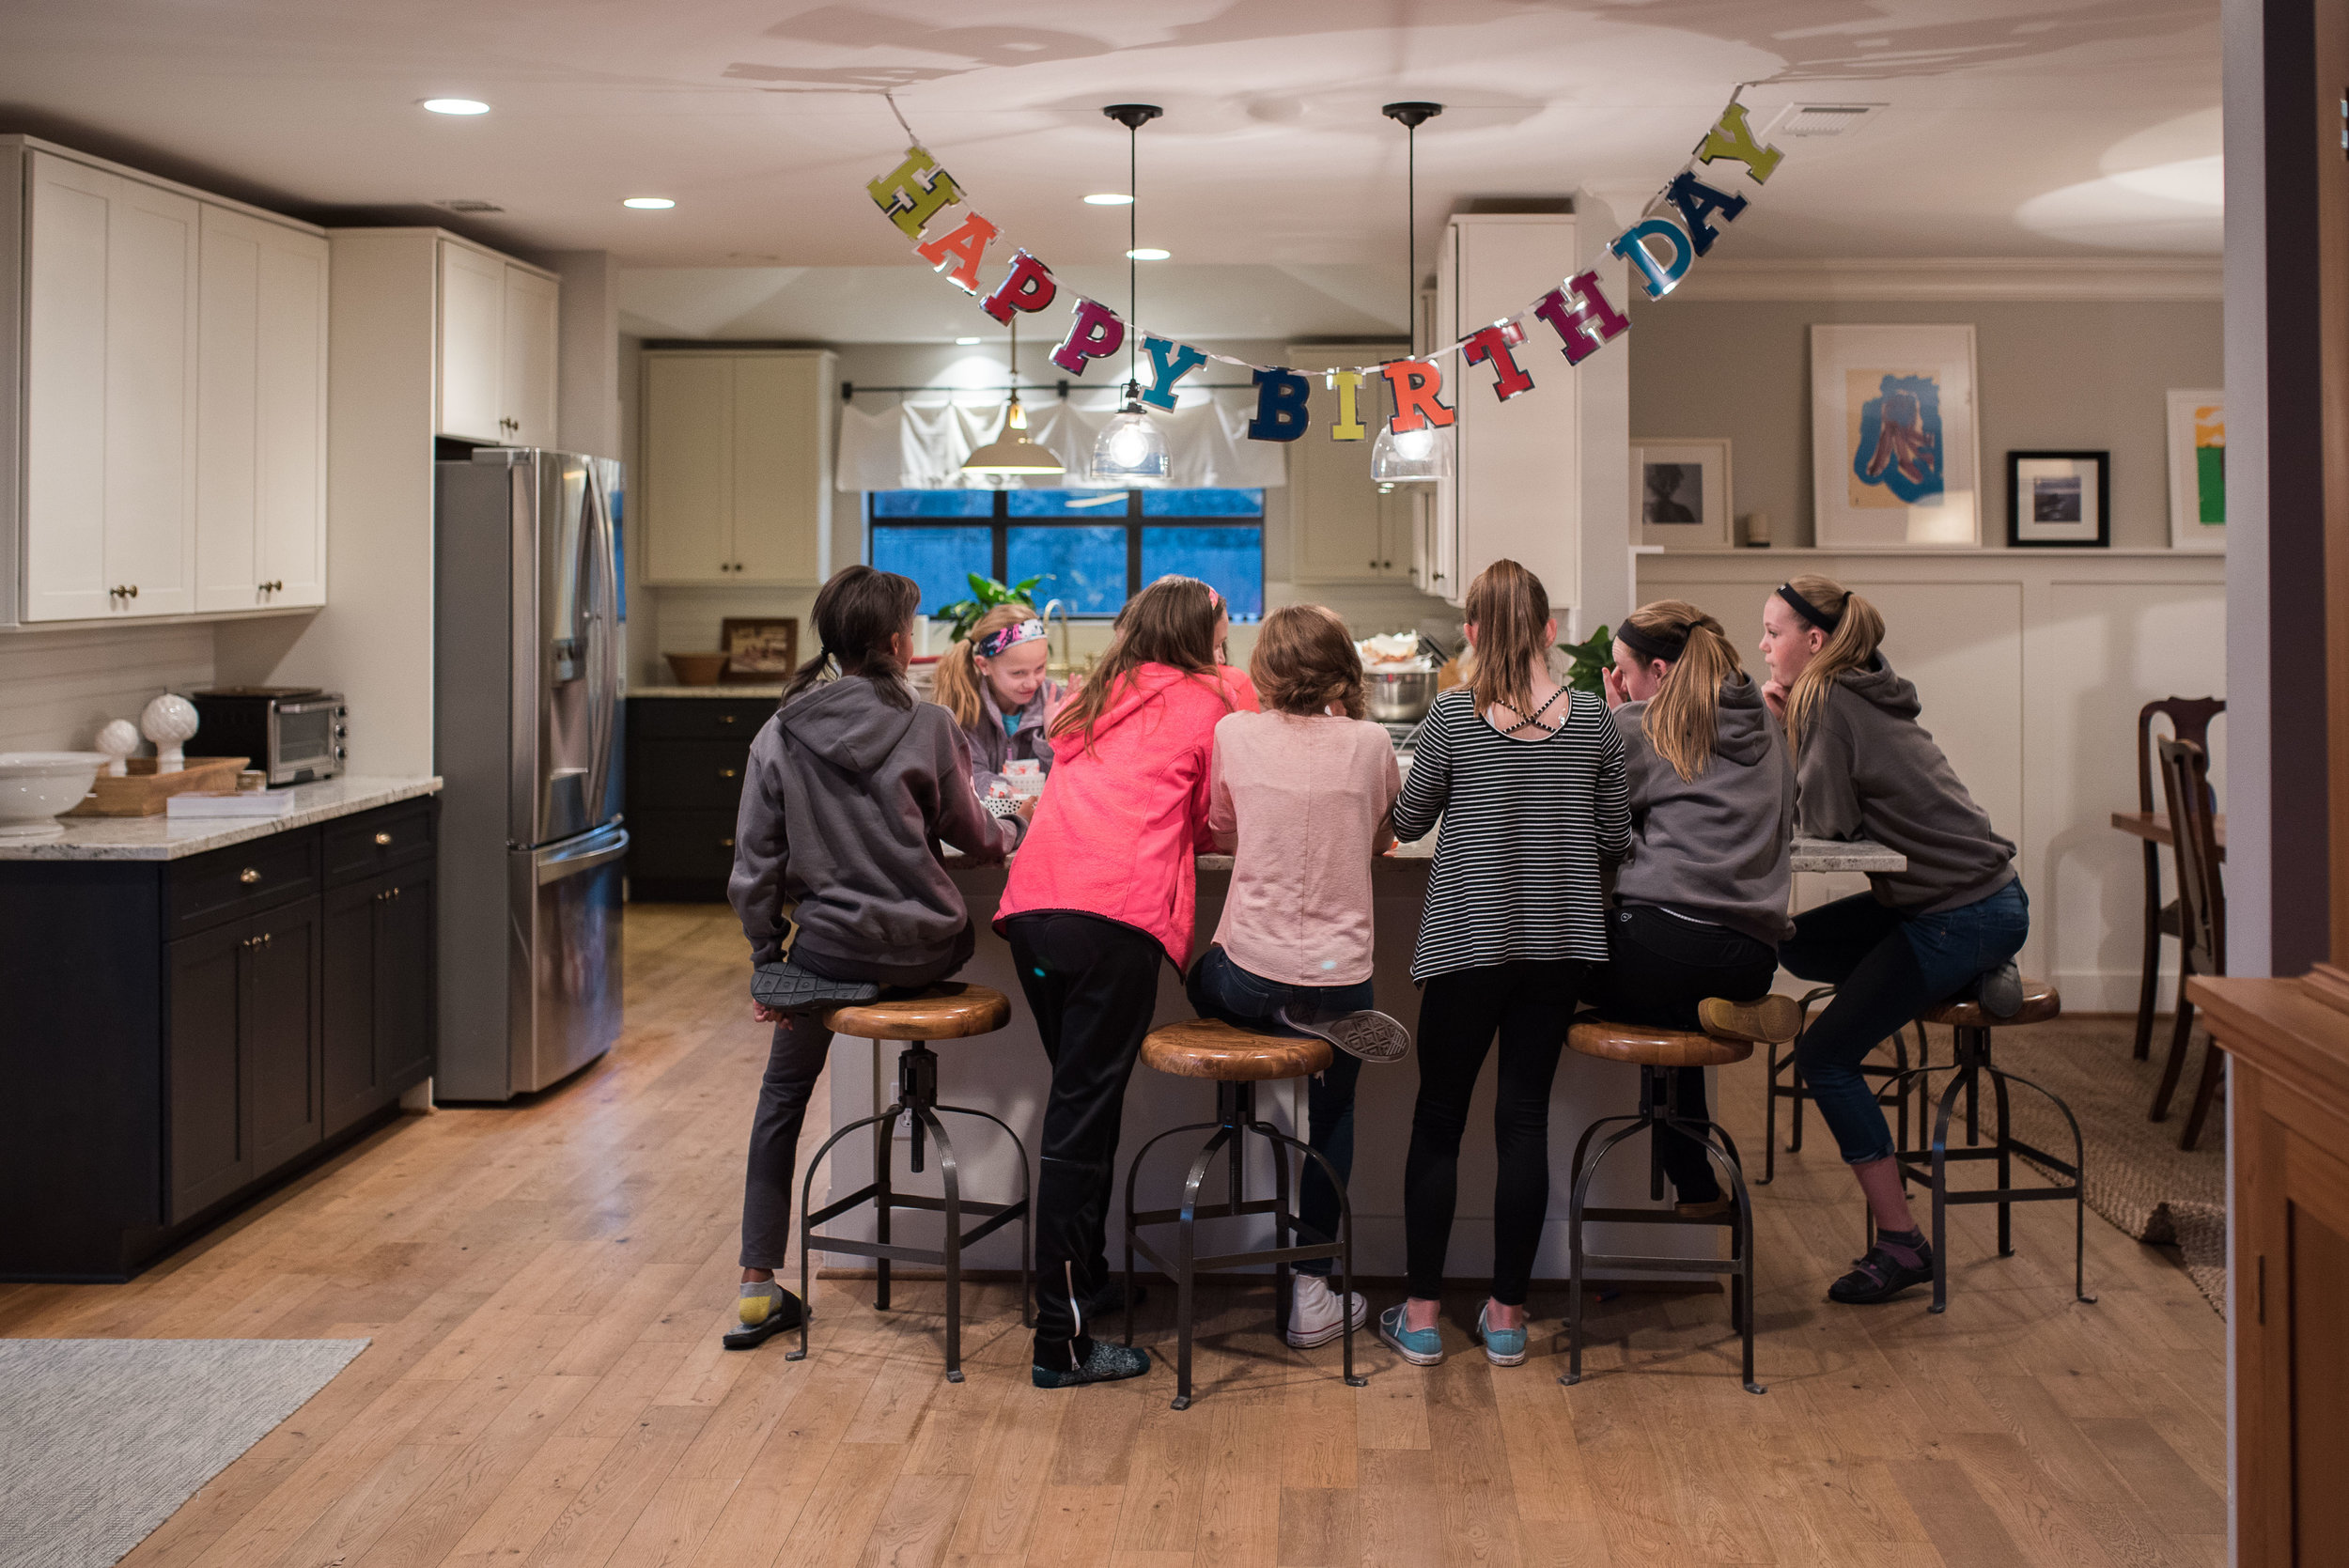 Back to home and reality, Ella celebrated her birthday with friends for a sleepover.